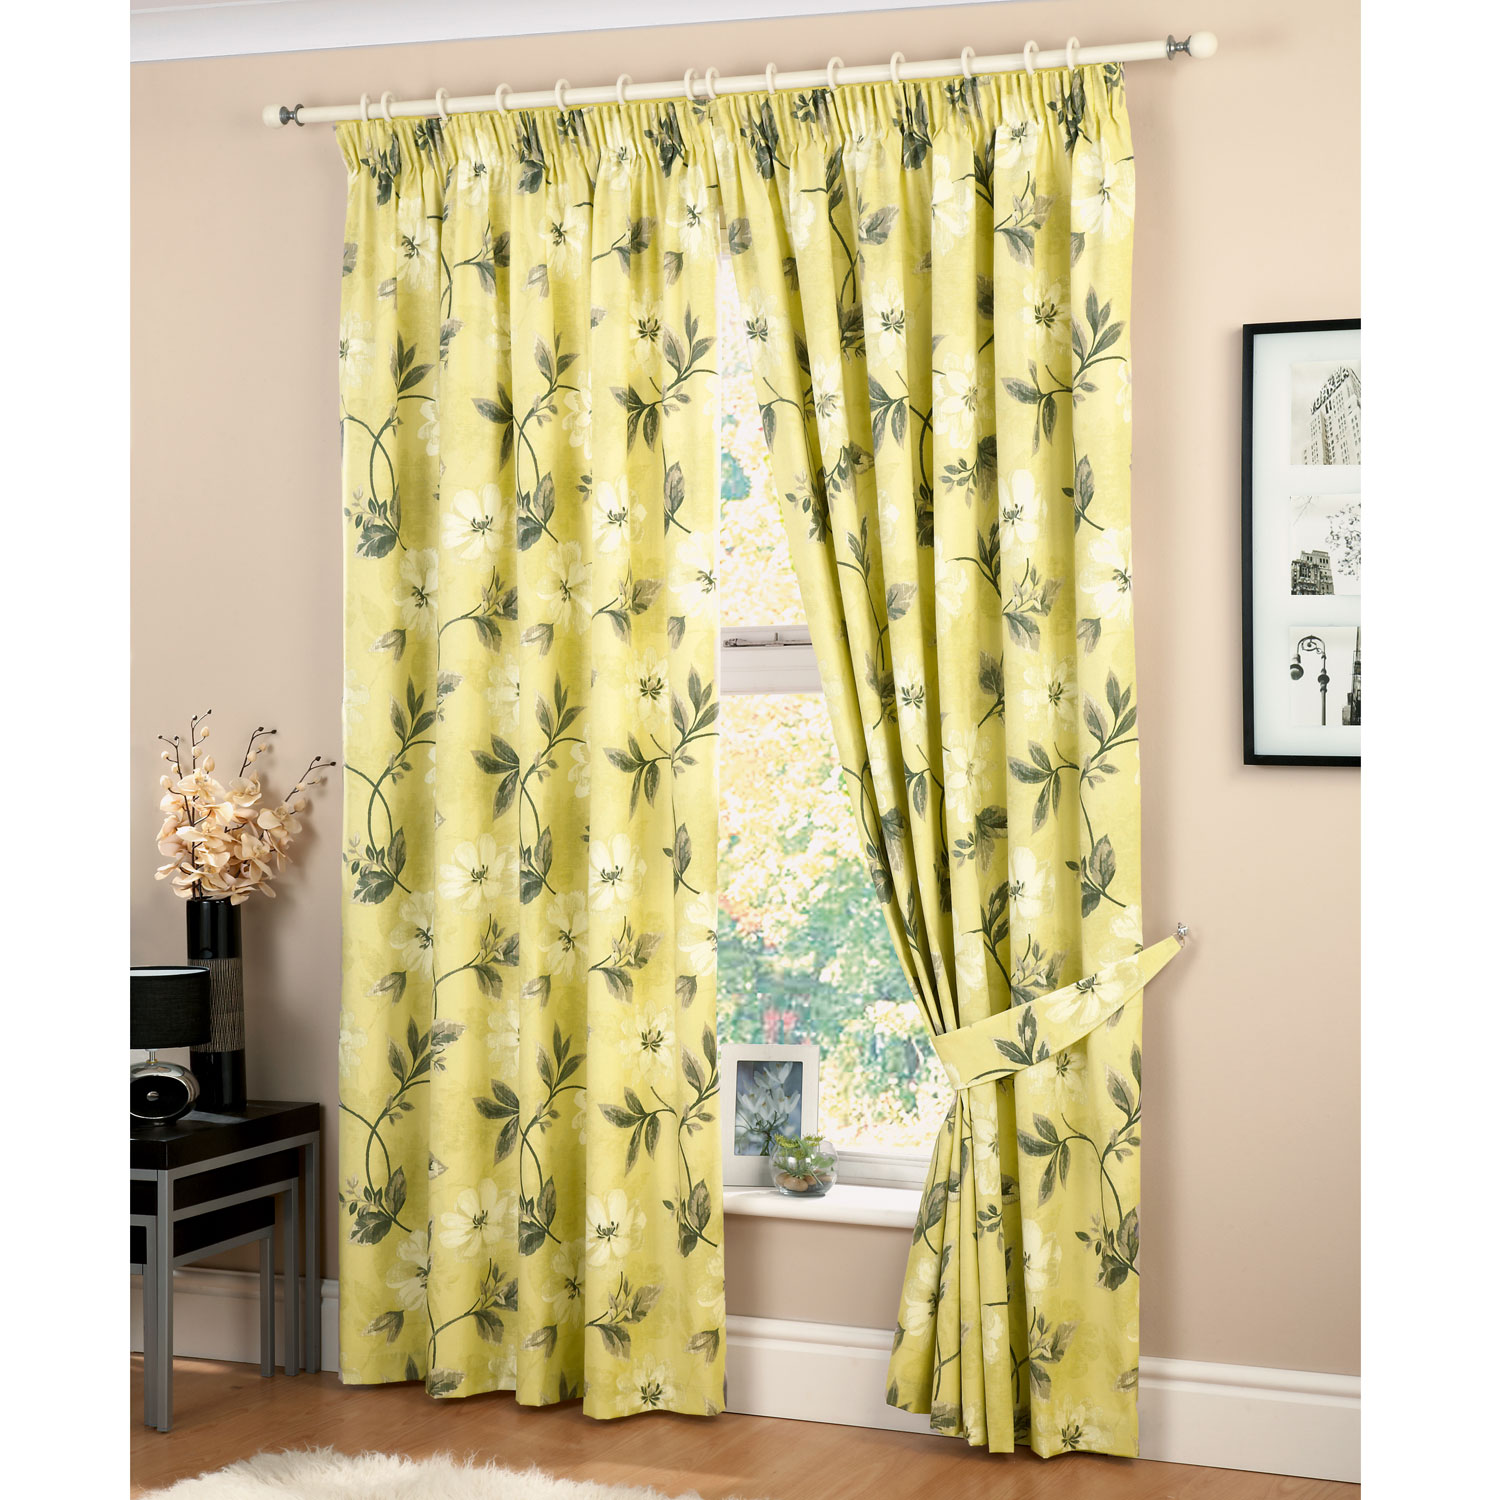 Superb 10 Photos To Lemon Kitchen Curtains